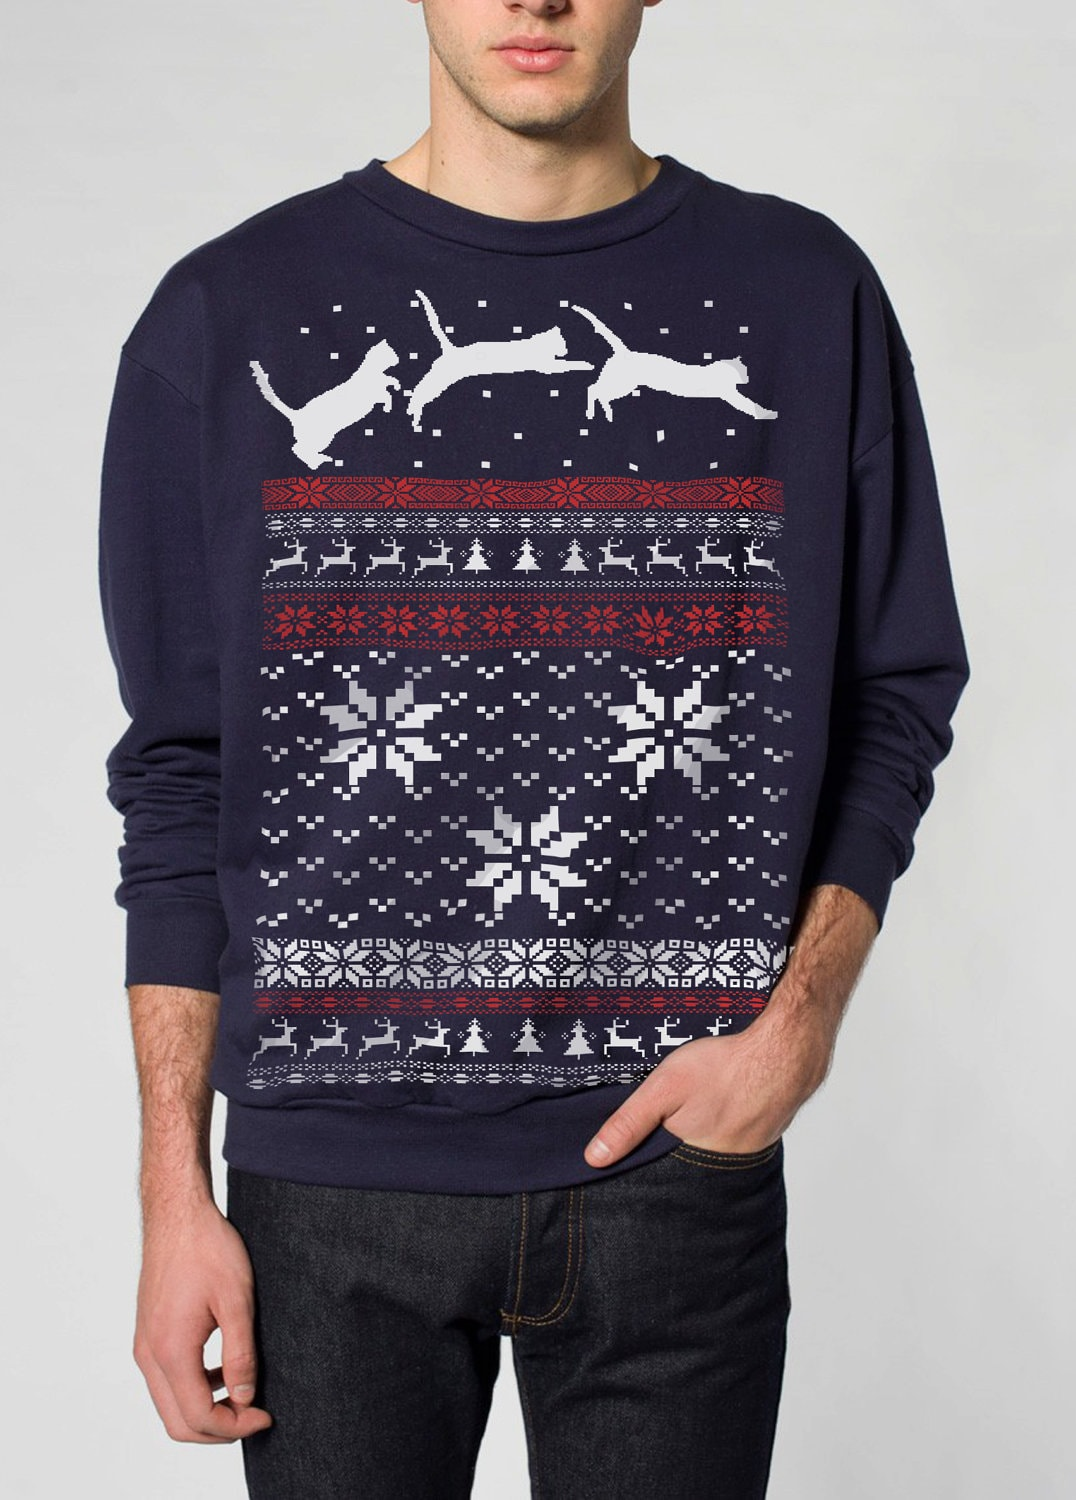 Christmas sweaters for cats